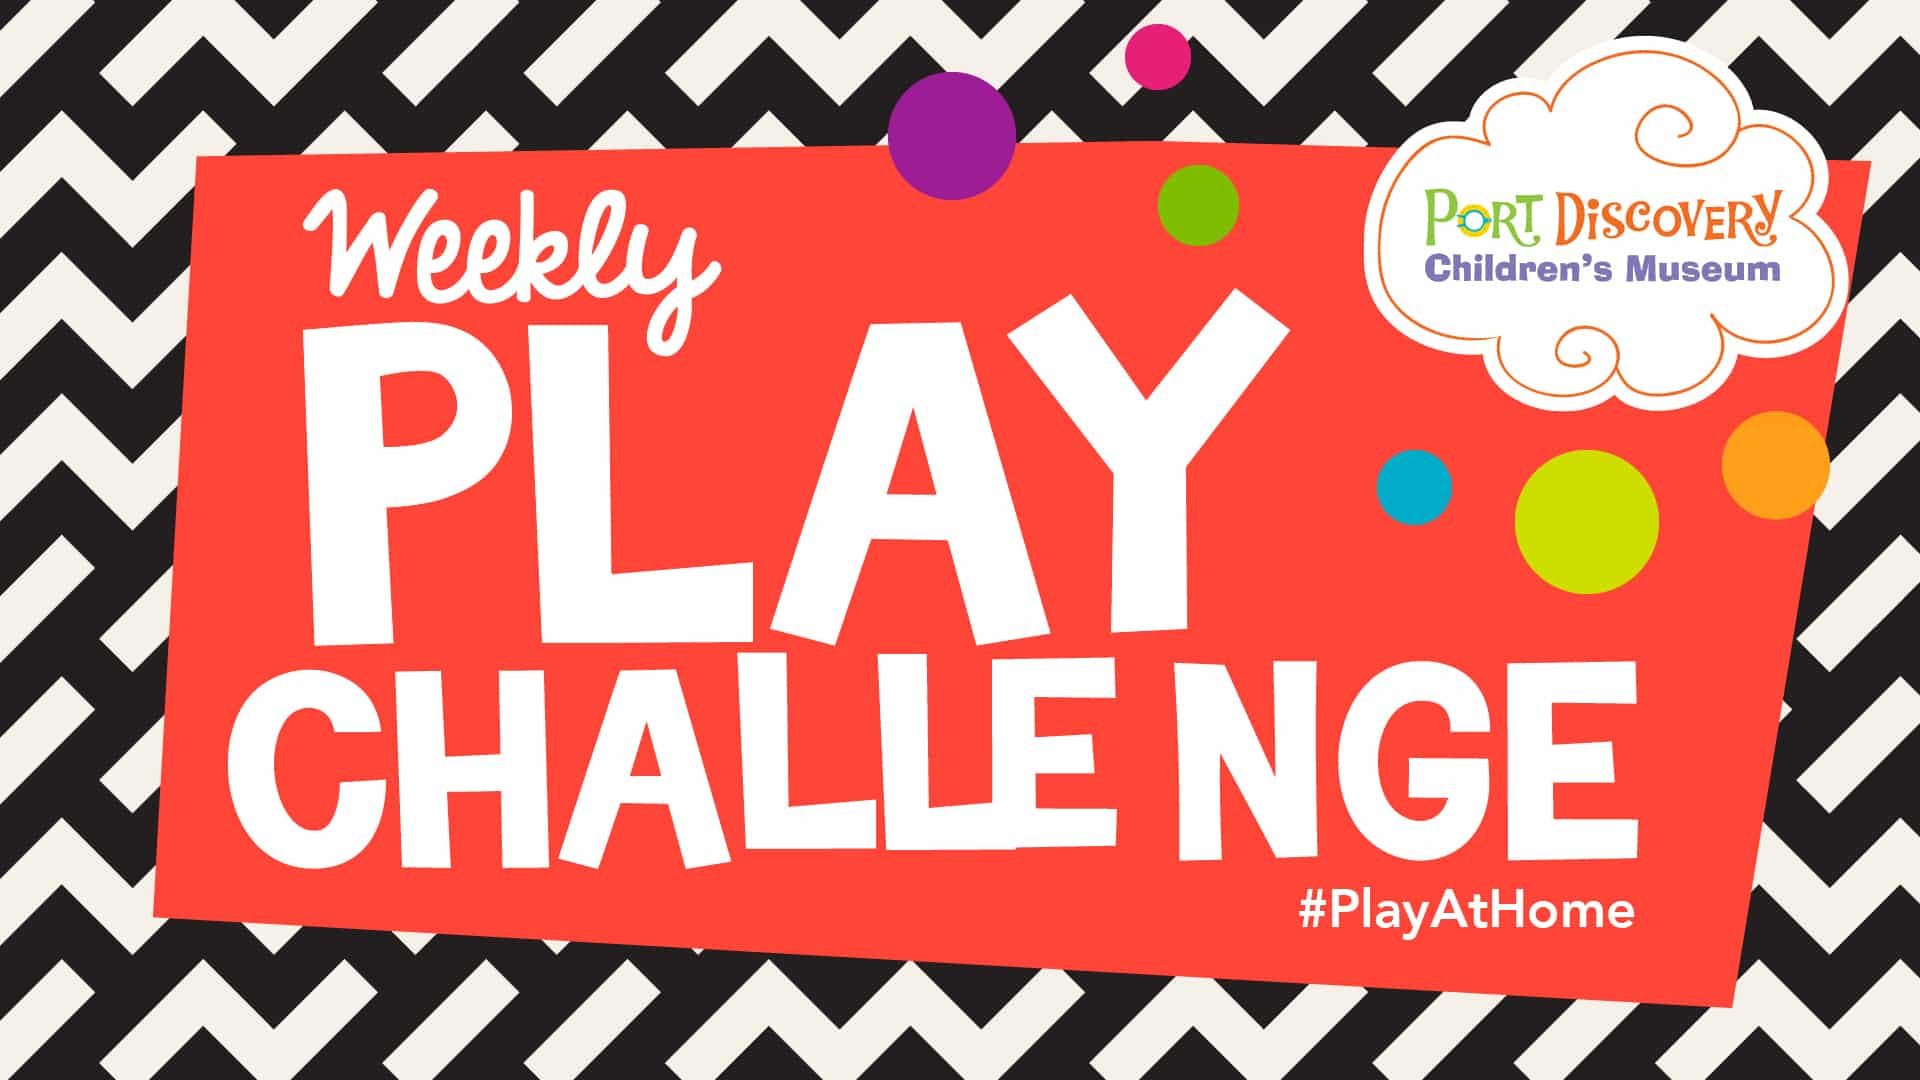 Weekly Play Challenge with Port Discovery